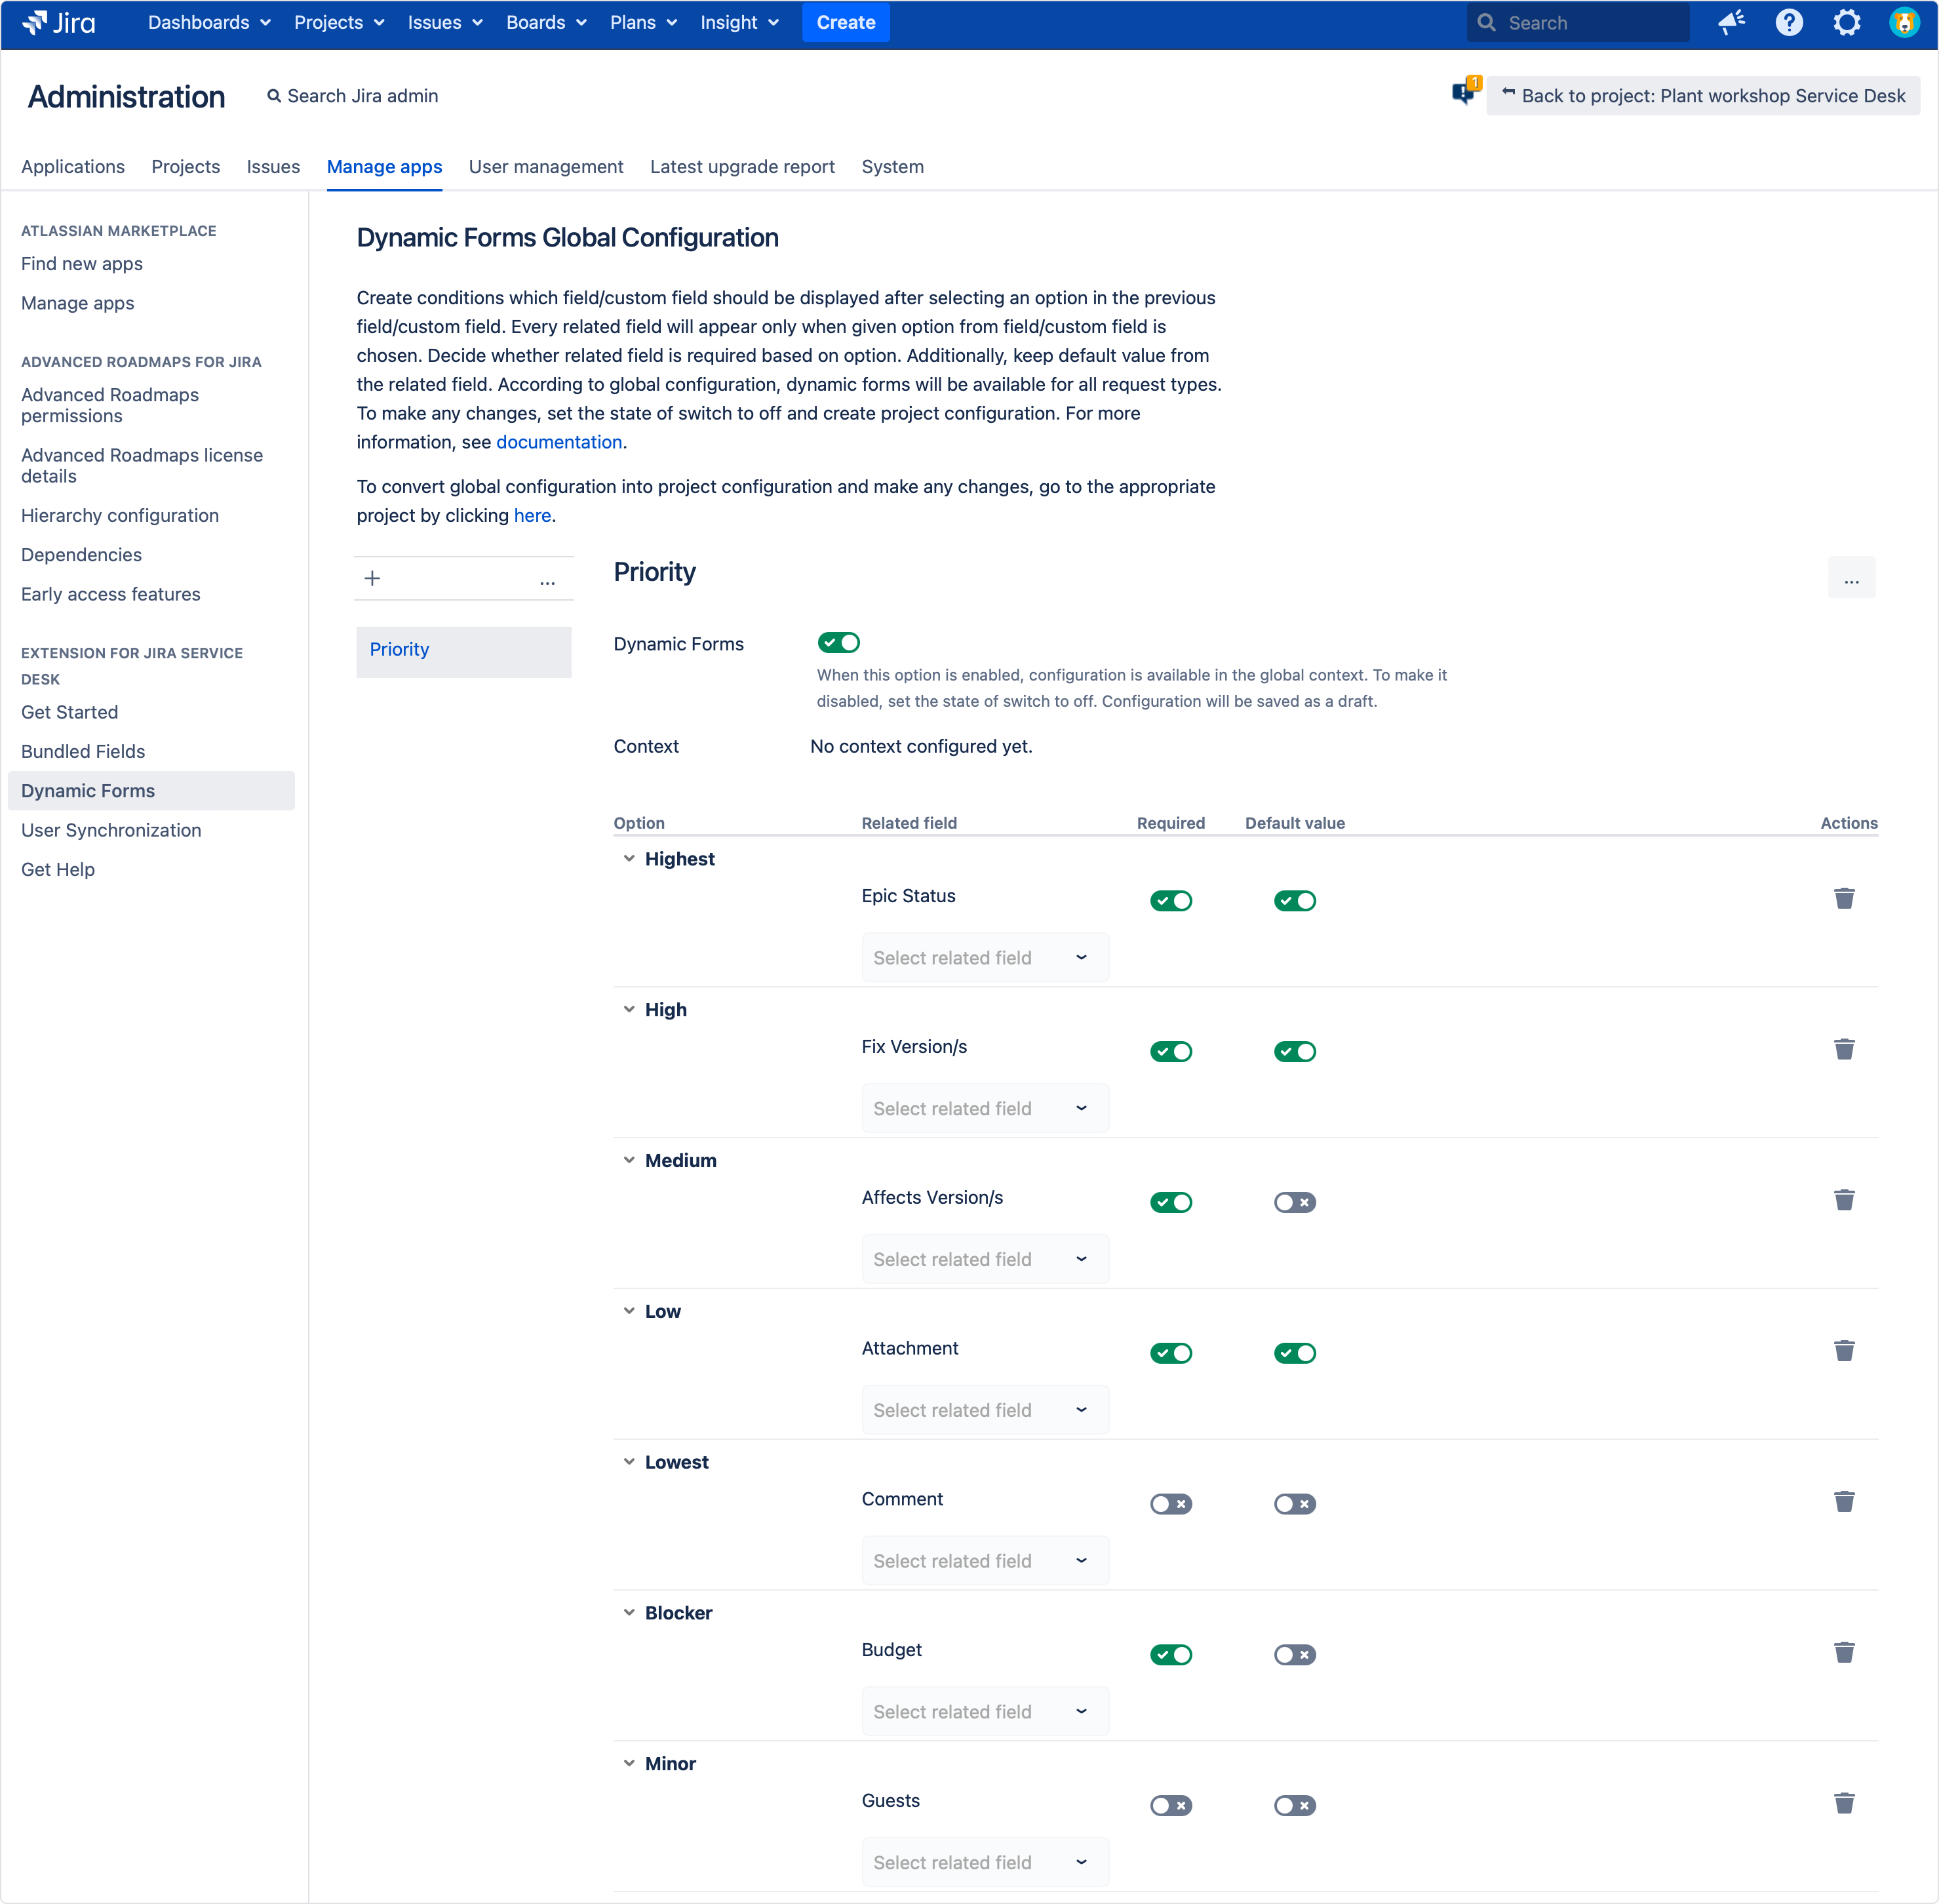 Creating a Dynamic Forms Global Configuration with Extension for Jira Service Management by setting a field option, related field, required and default value option